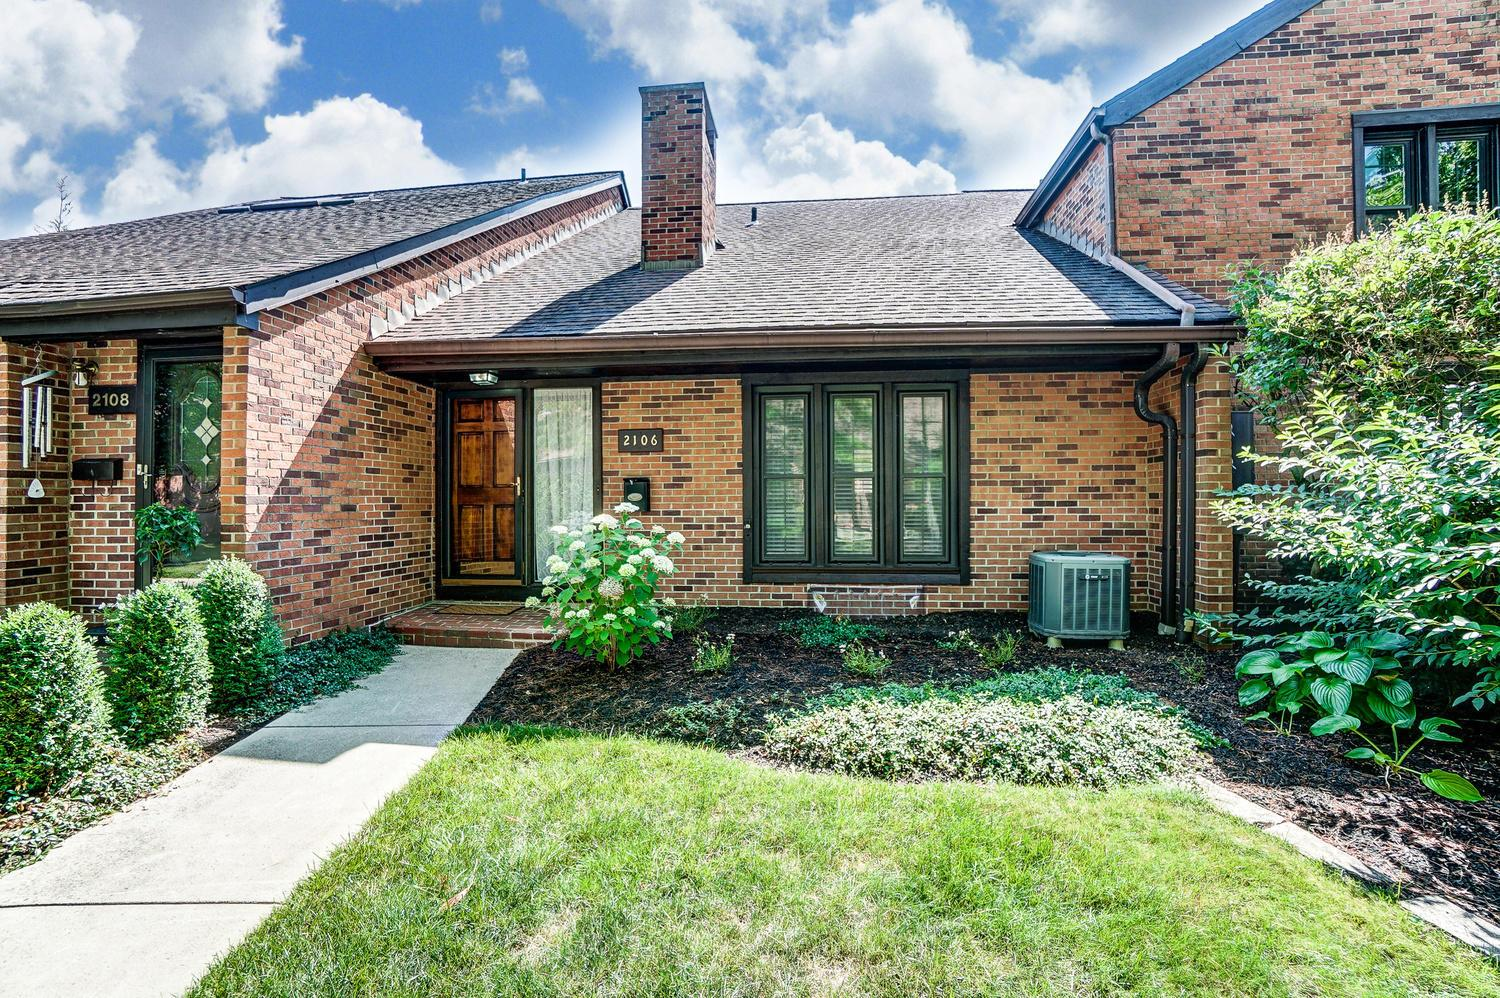 Property for sale at 2106 Mackenzie Drive, Upper Arlington, Ohio 43220